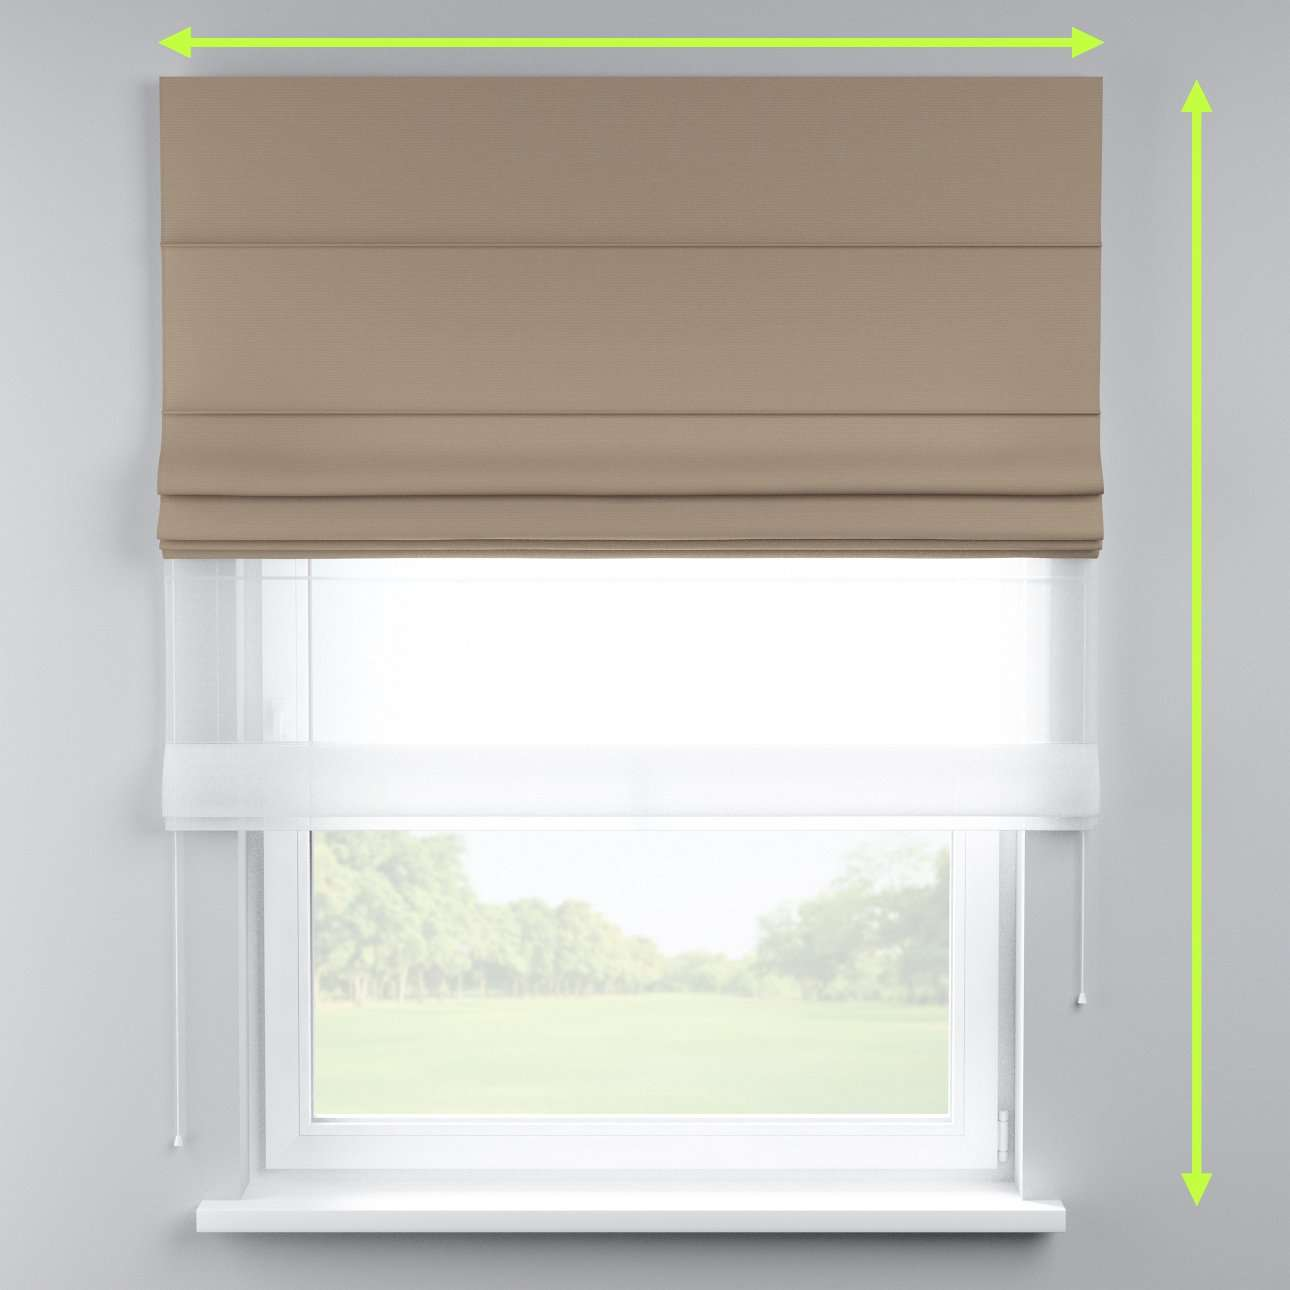 Raffrollo Duo II von der Kollektion Cotton Panama, Stoff: 702-28